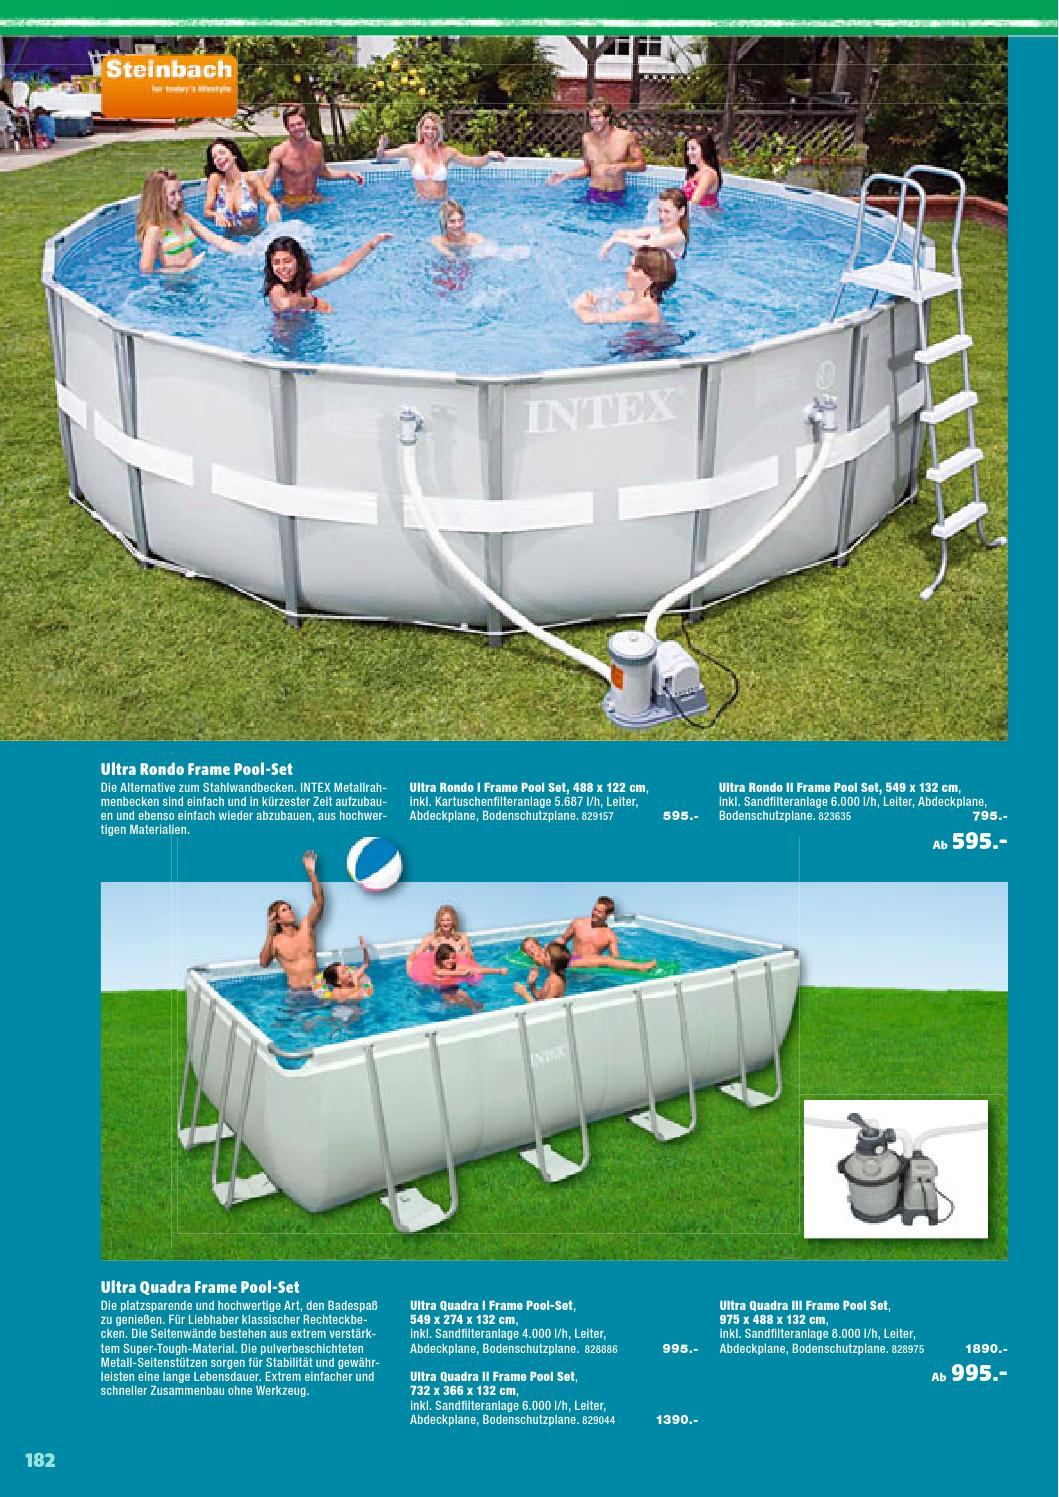 Sandfilteranlage Pool Toom Steinbach Pool Set Affordable Shop All Kiddie Pools With